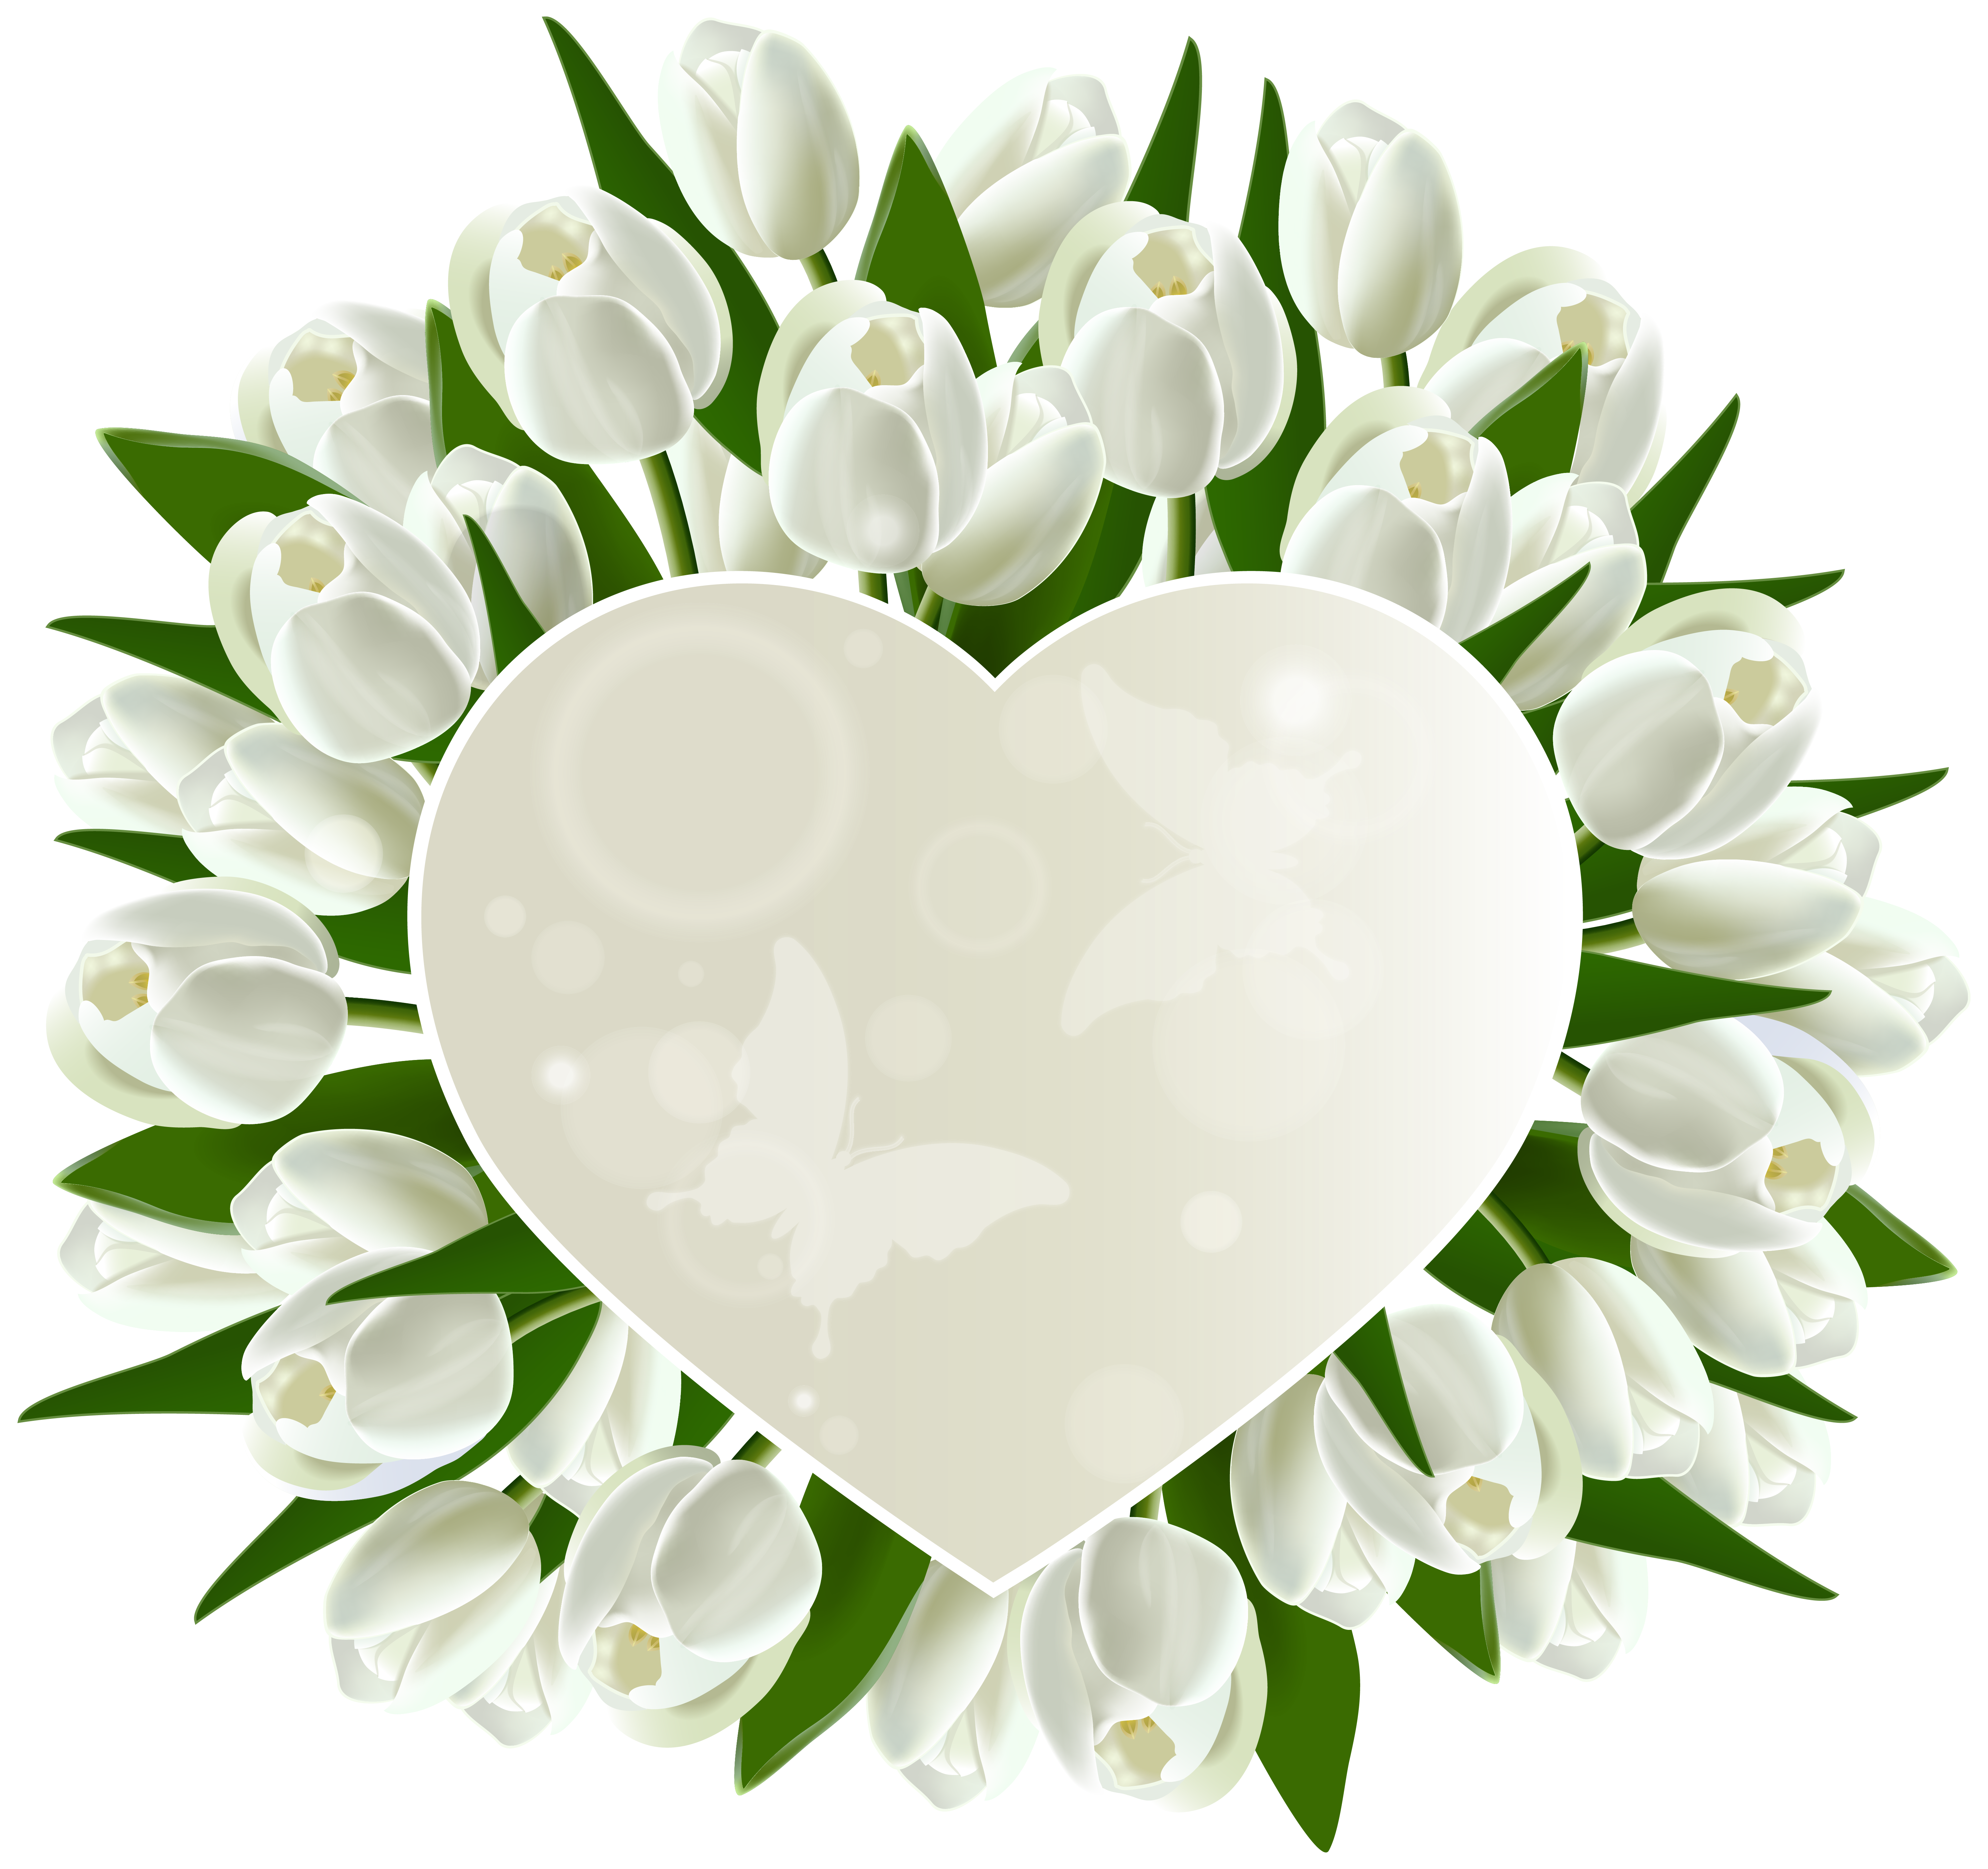 Hydrangea clipart high resolution. White tulips heart decoration